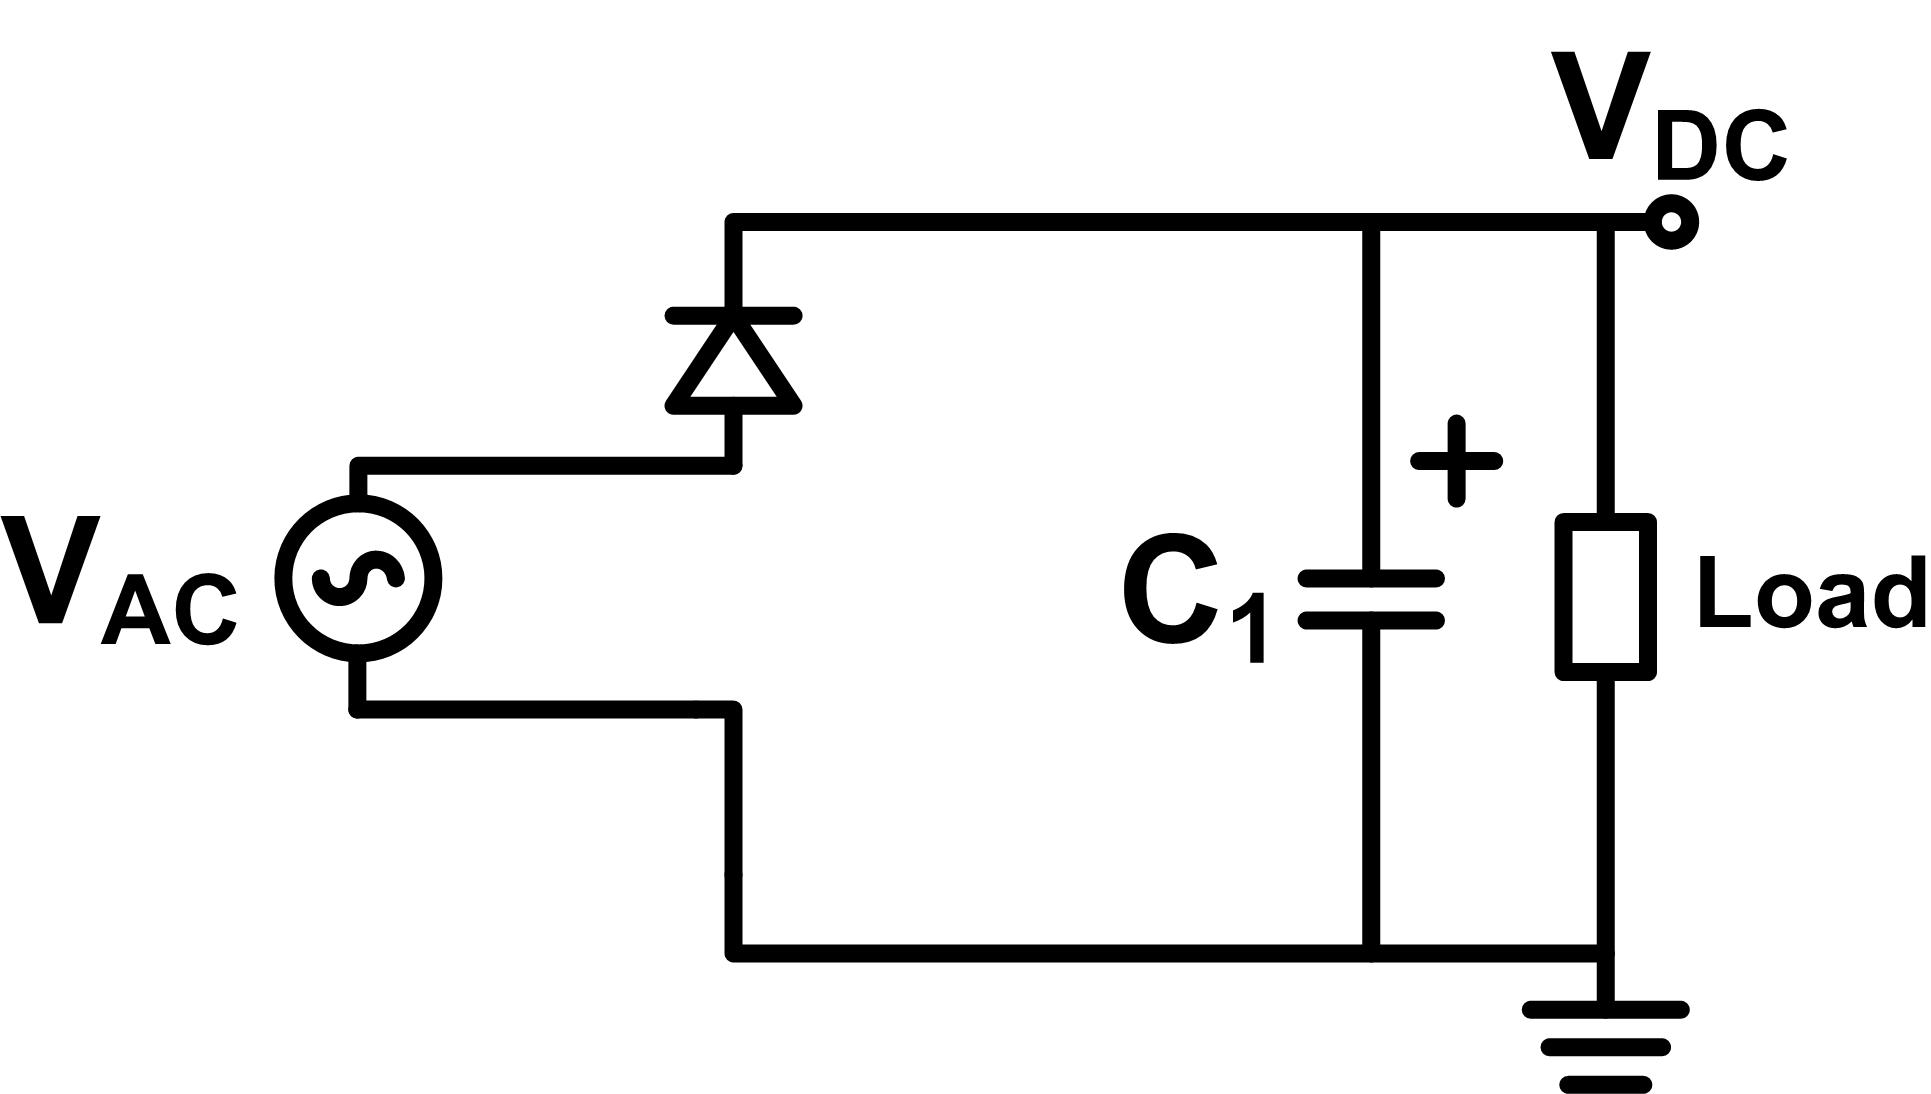 Half wave rectifier circuit